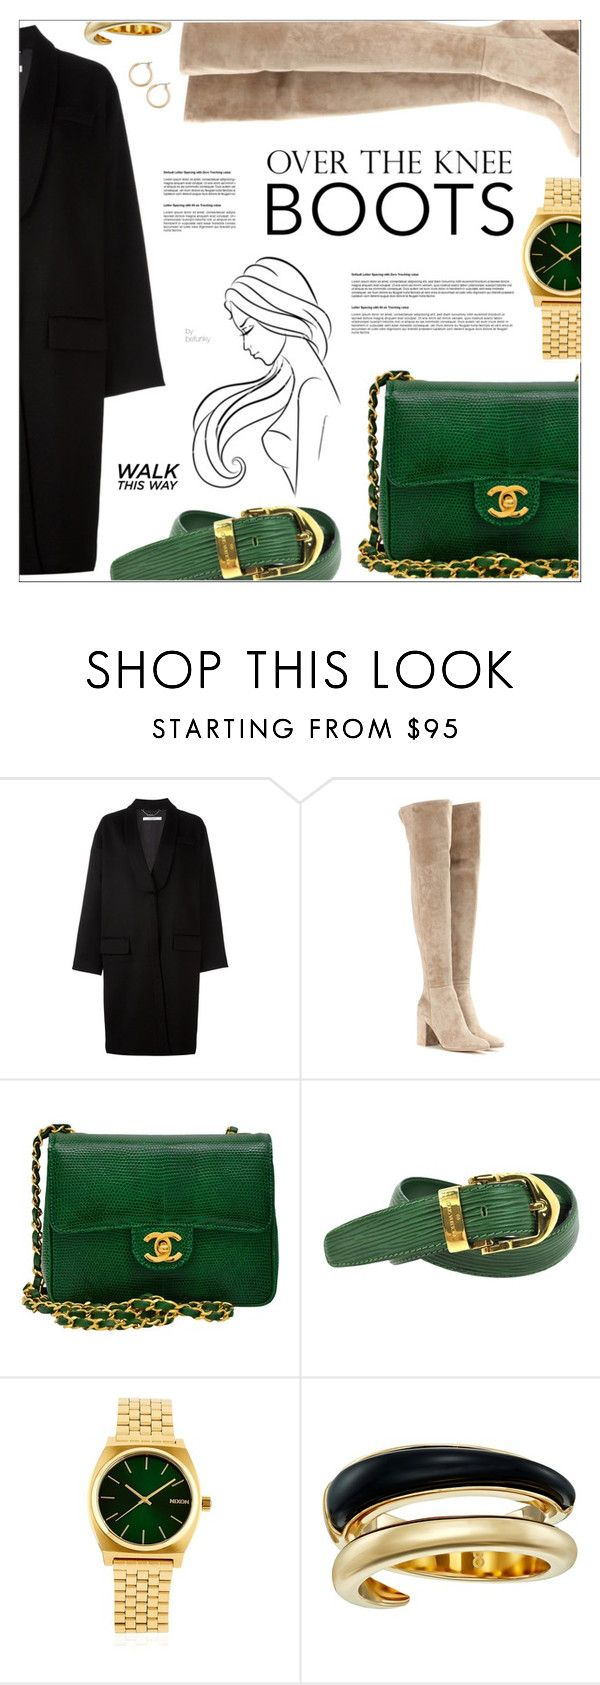 """""""Fall Footwear: Over-The-Knee Boots #2"""" by befunky on Polyvore featuring Givenchy, Gianvito Rossi, Chanel, Louis Vuitton, Nixon, Michael Kors, Nordstrom, Boots, polyvorecommunity and PolyvoreMostStylish"""